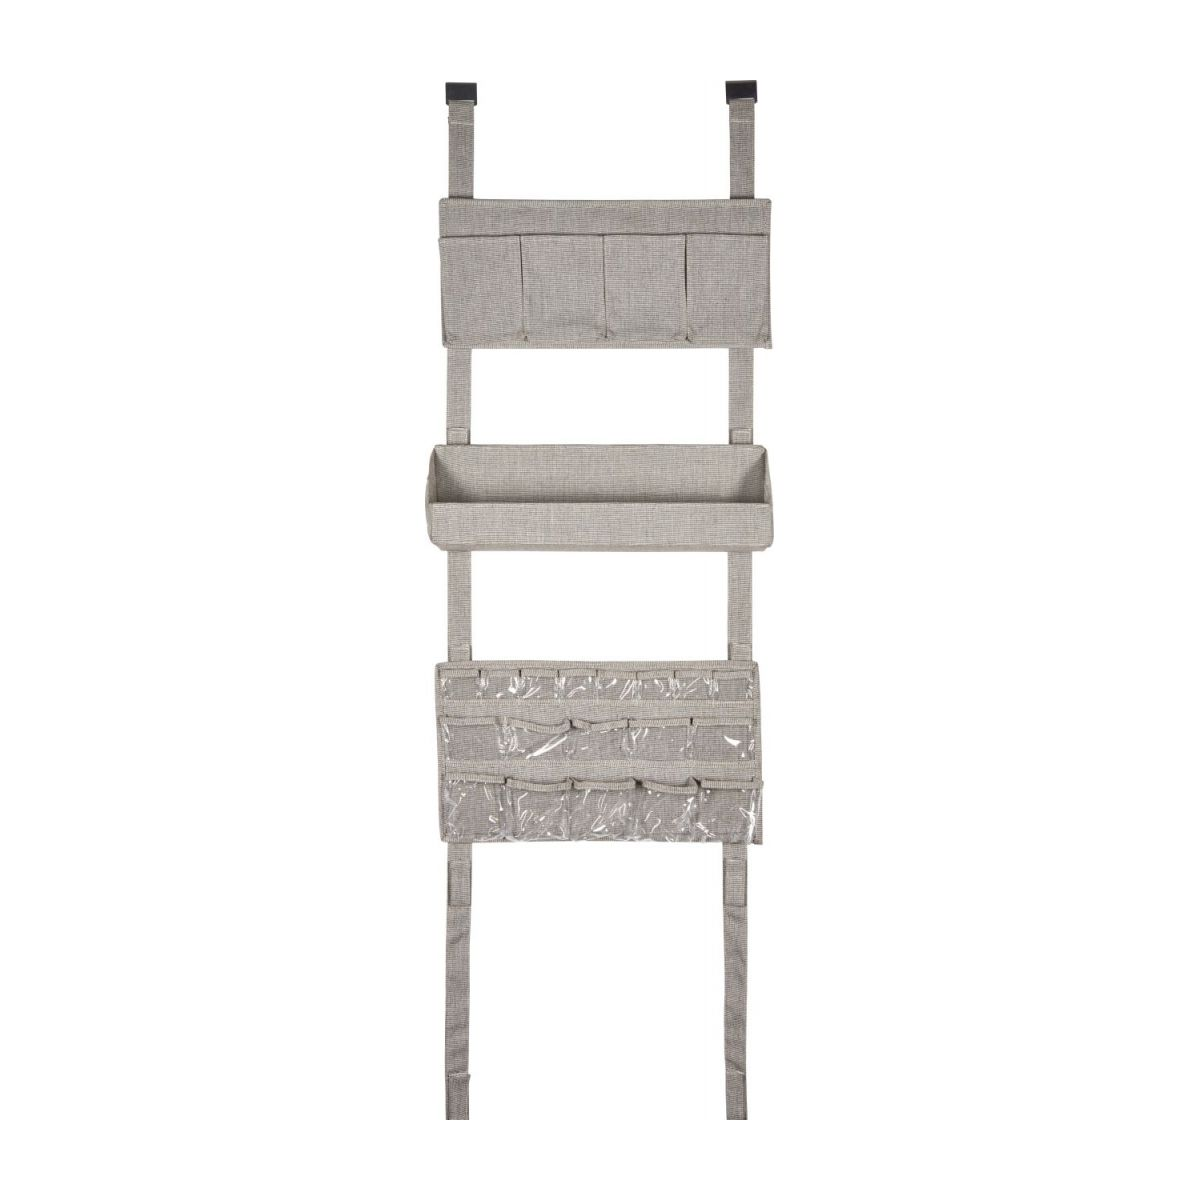 Wall modular storage with pockets, grey fabric and bamboo n°2